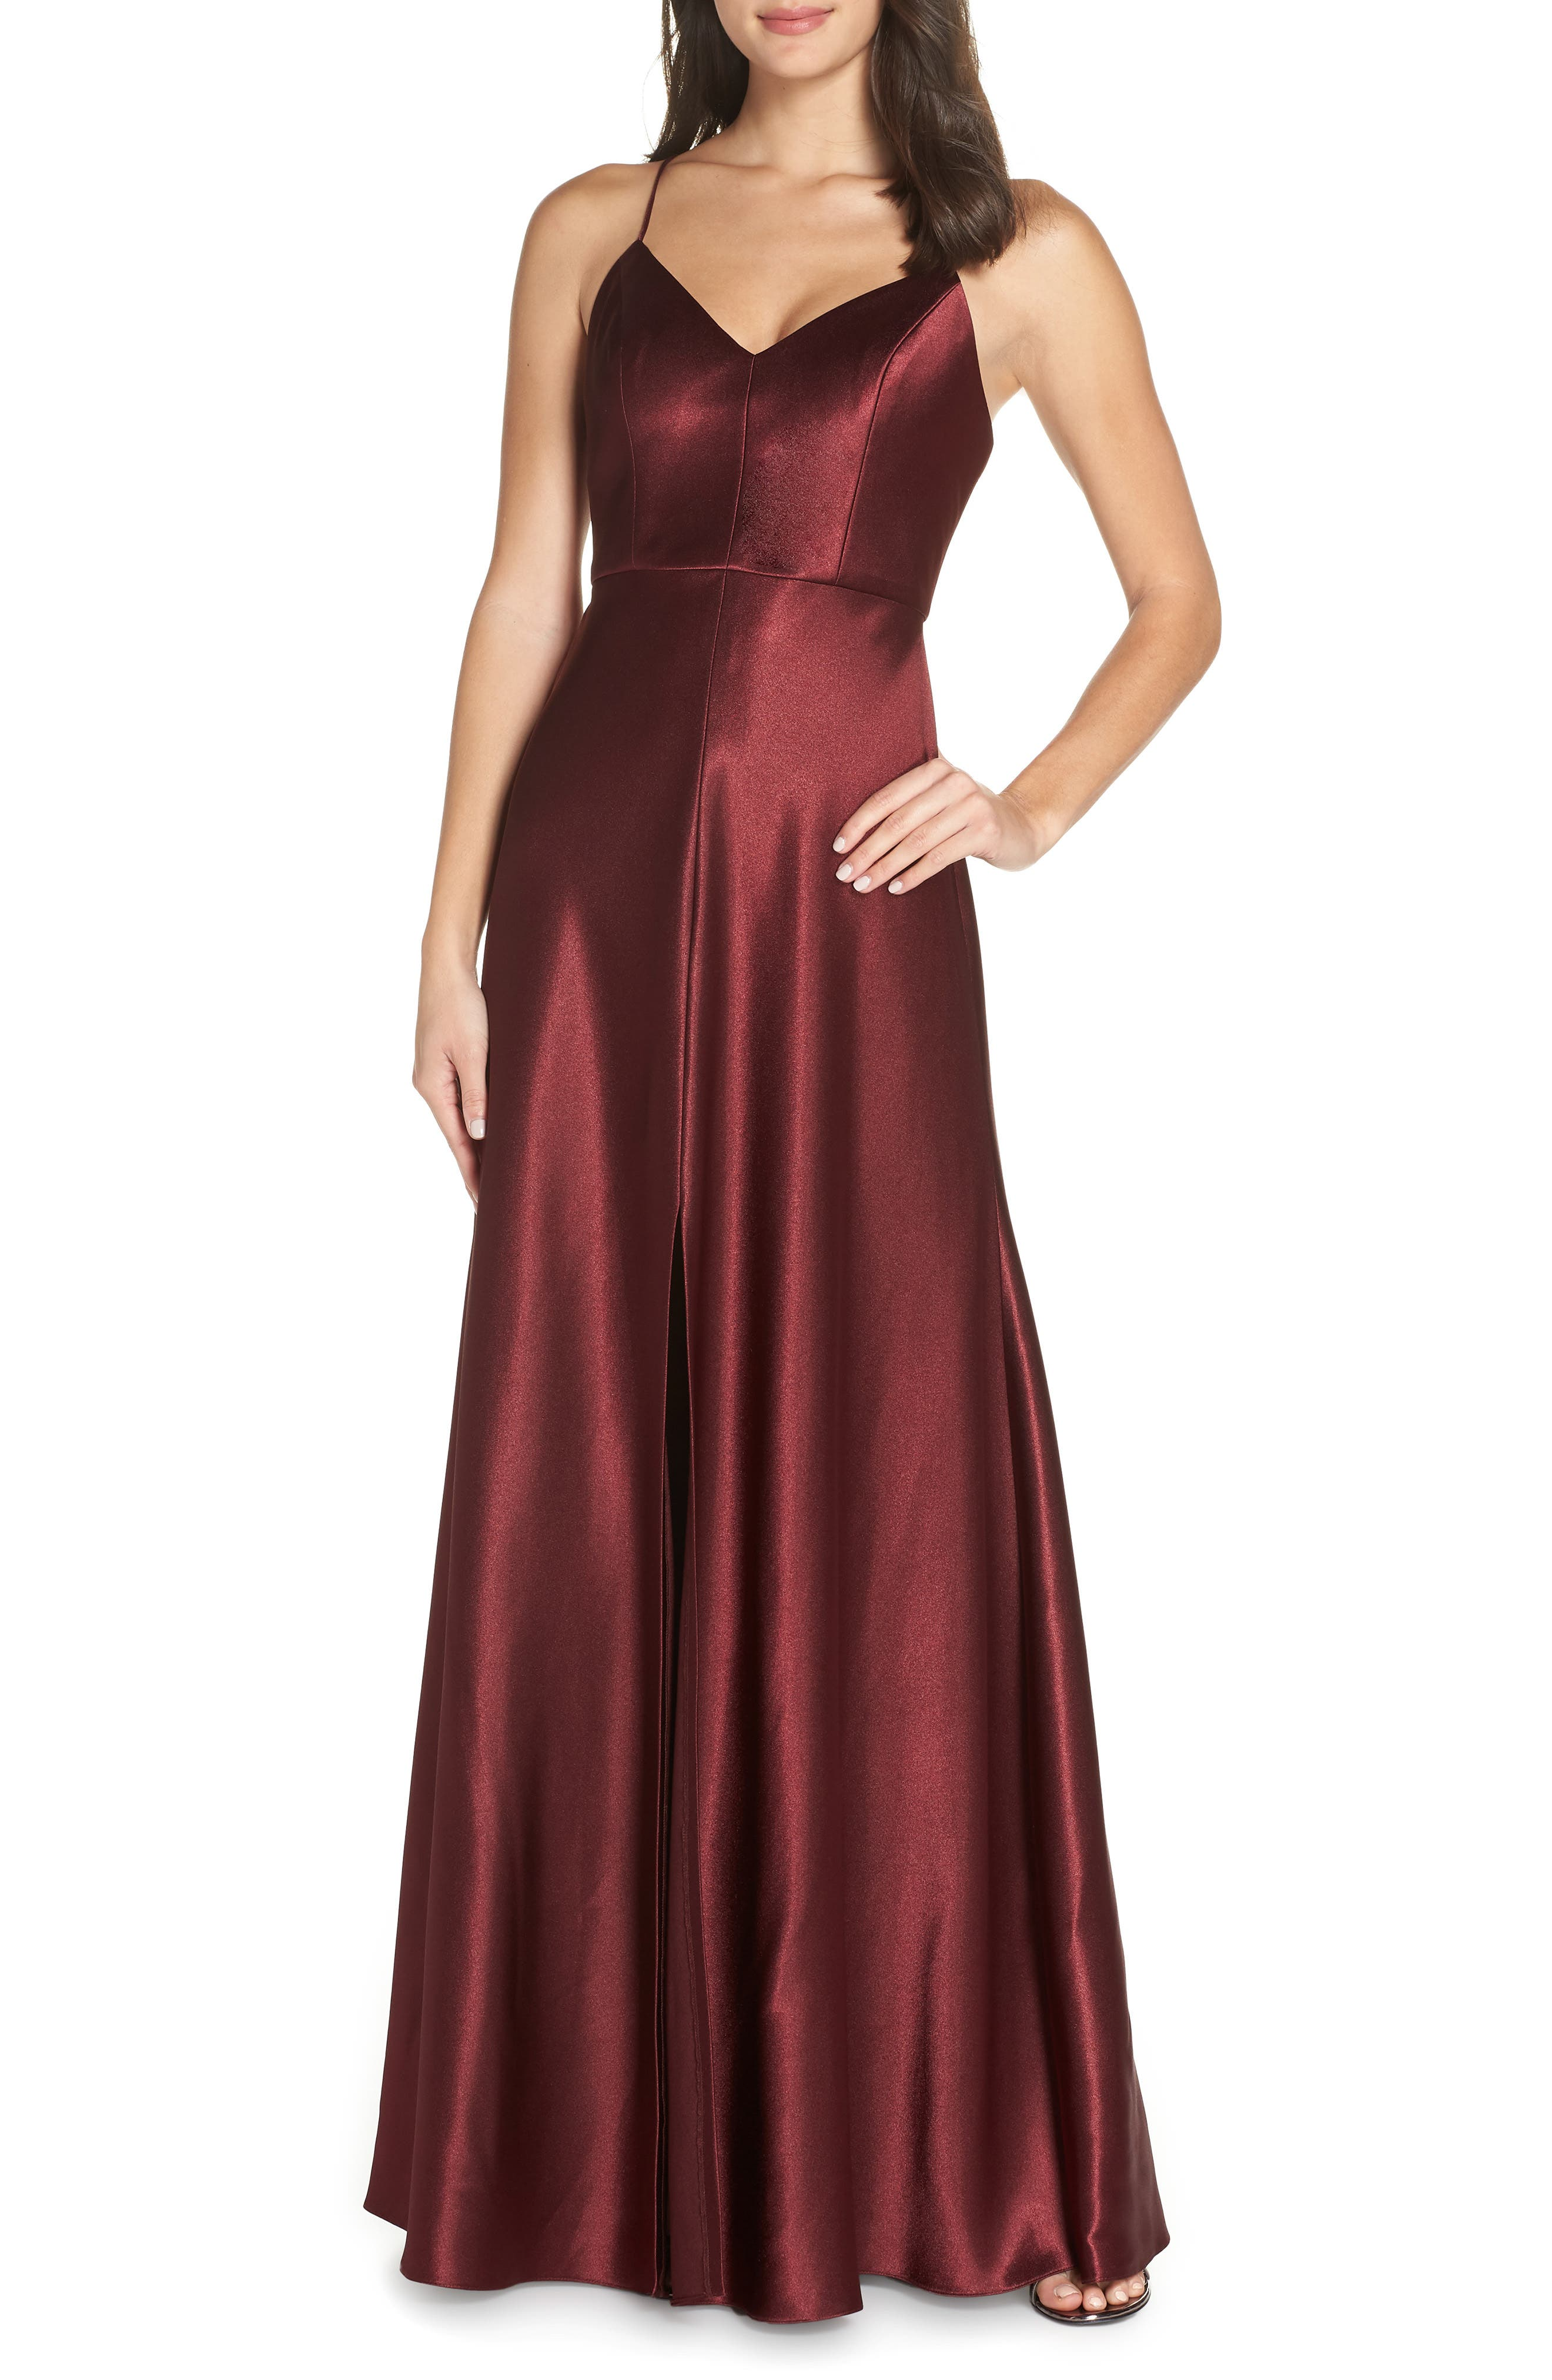 Dina V-Neck Satin Crepe Gown in Hibiscus